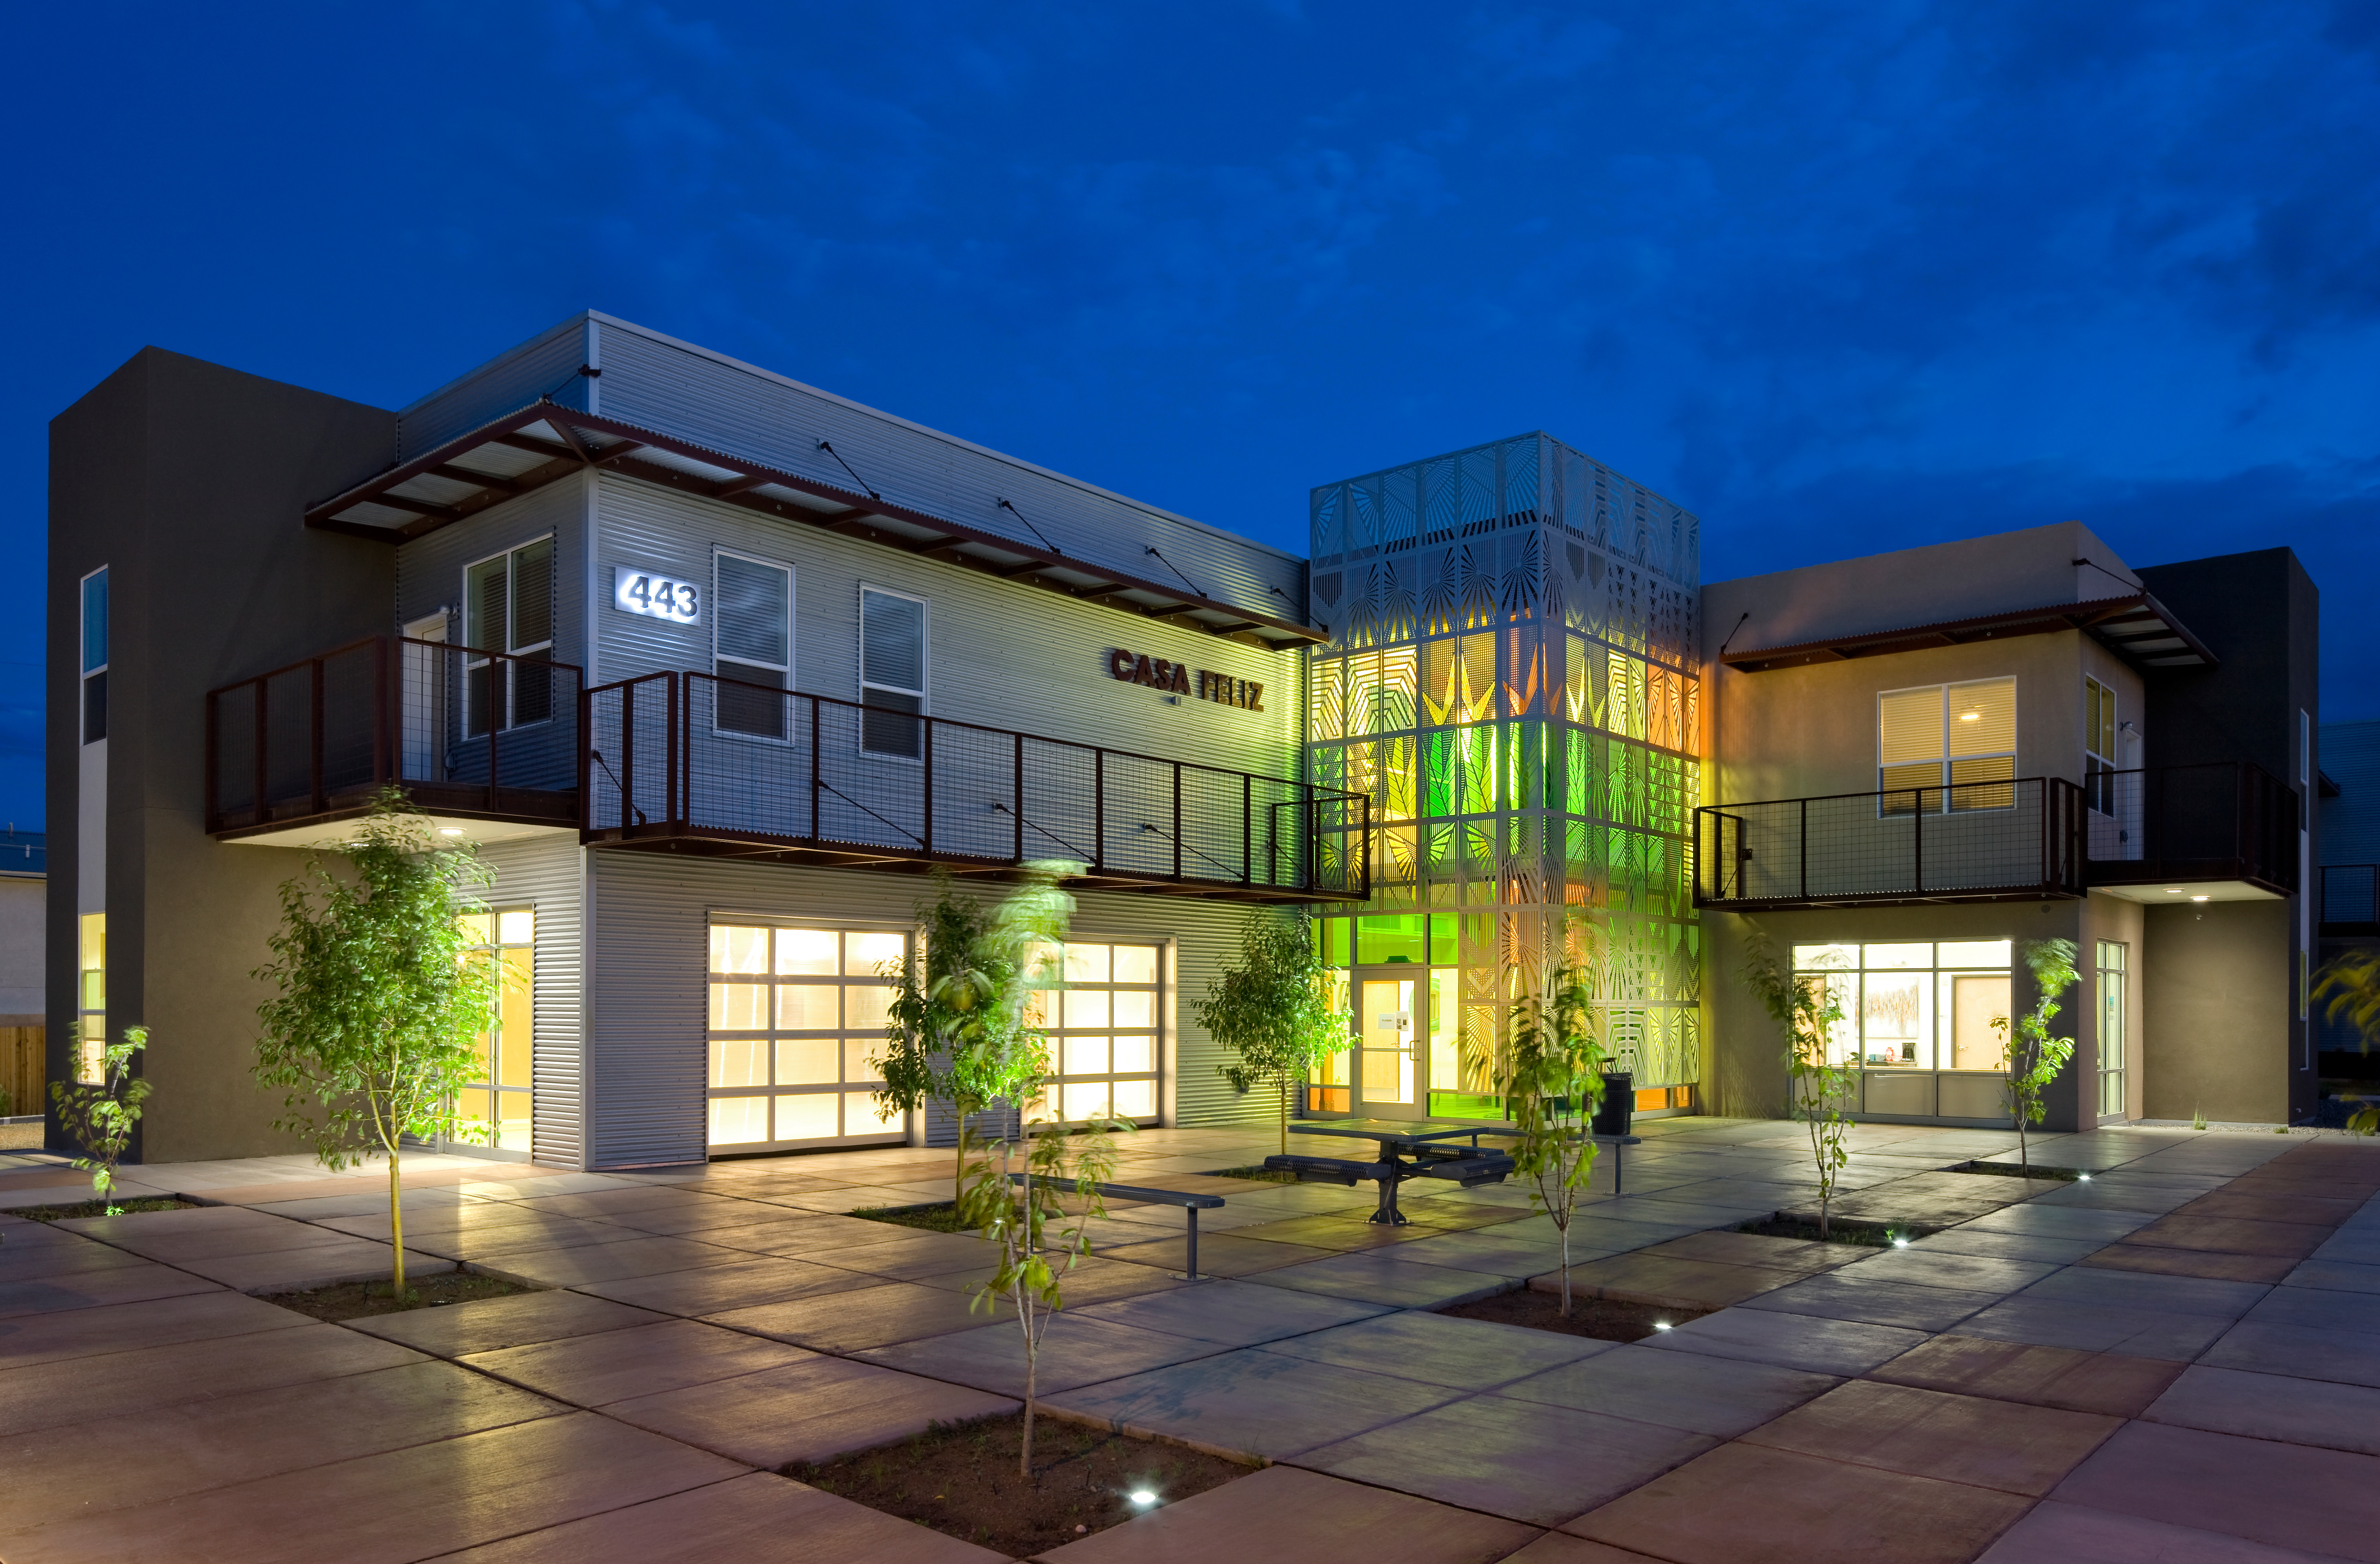 LEED Platinum Casa Feliz community building in Albuquerque